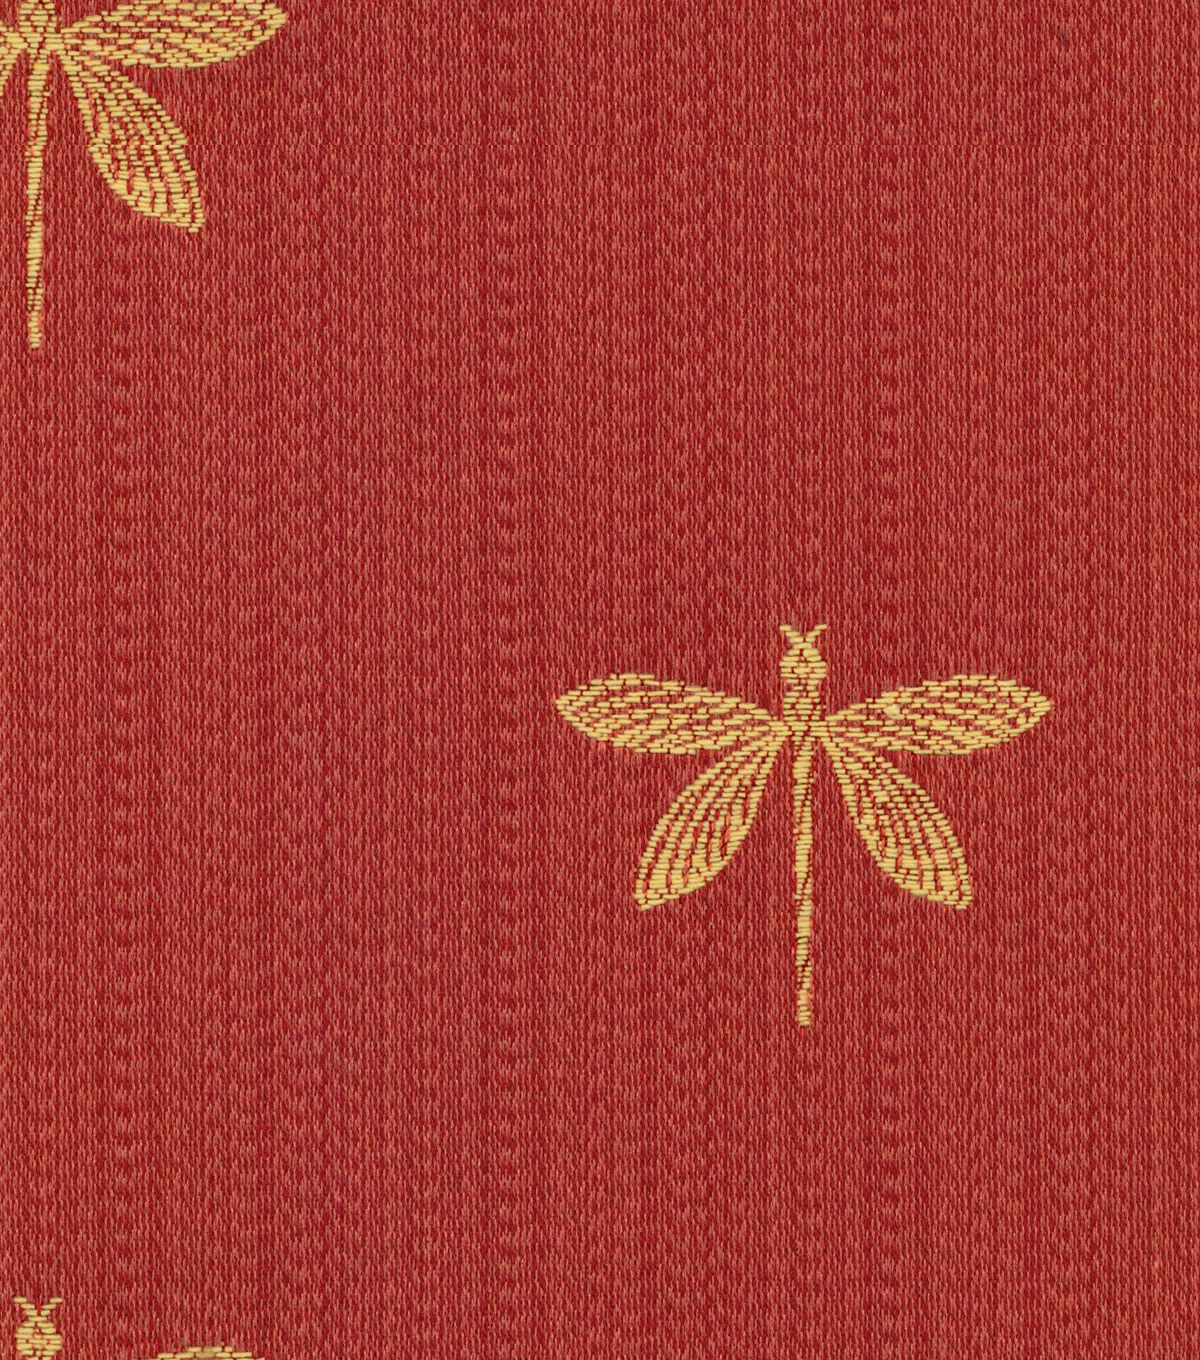 Joann fabric swavelle millcreek upholstery fabric imperial dragonfly marachino